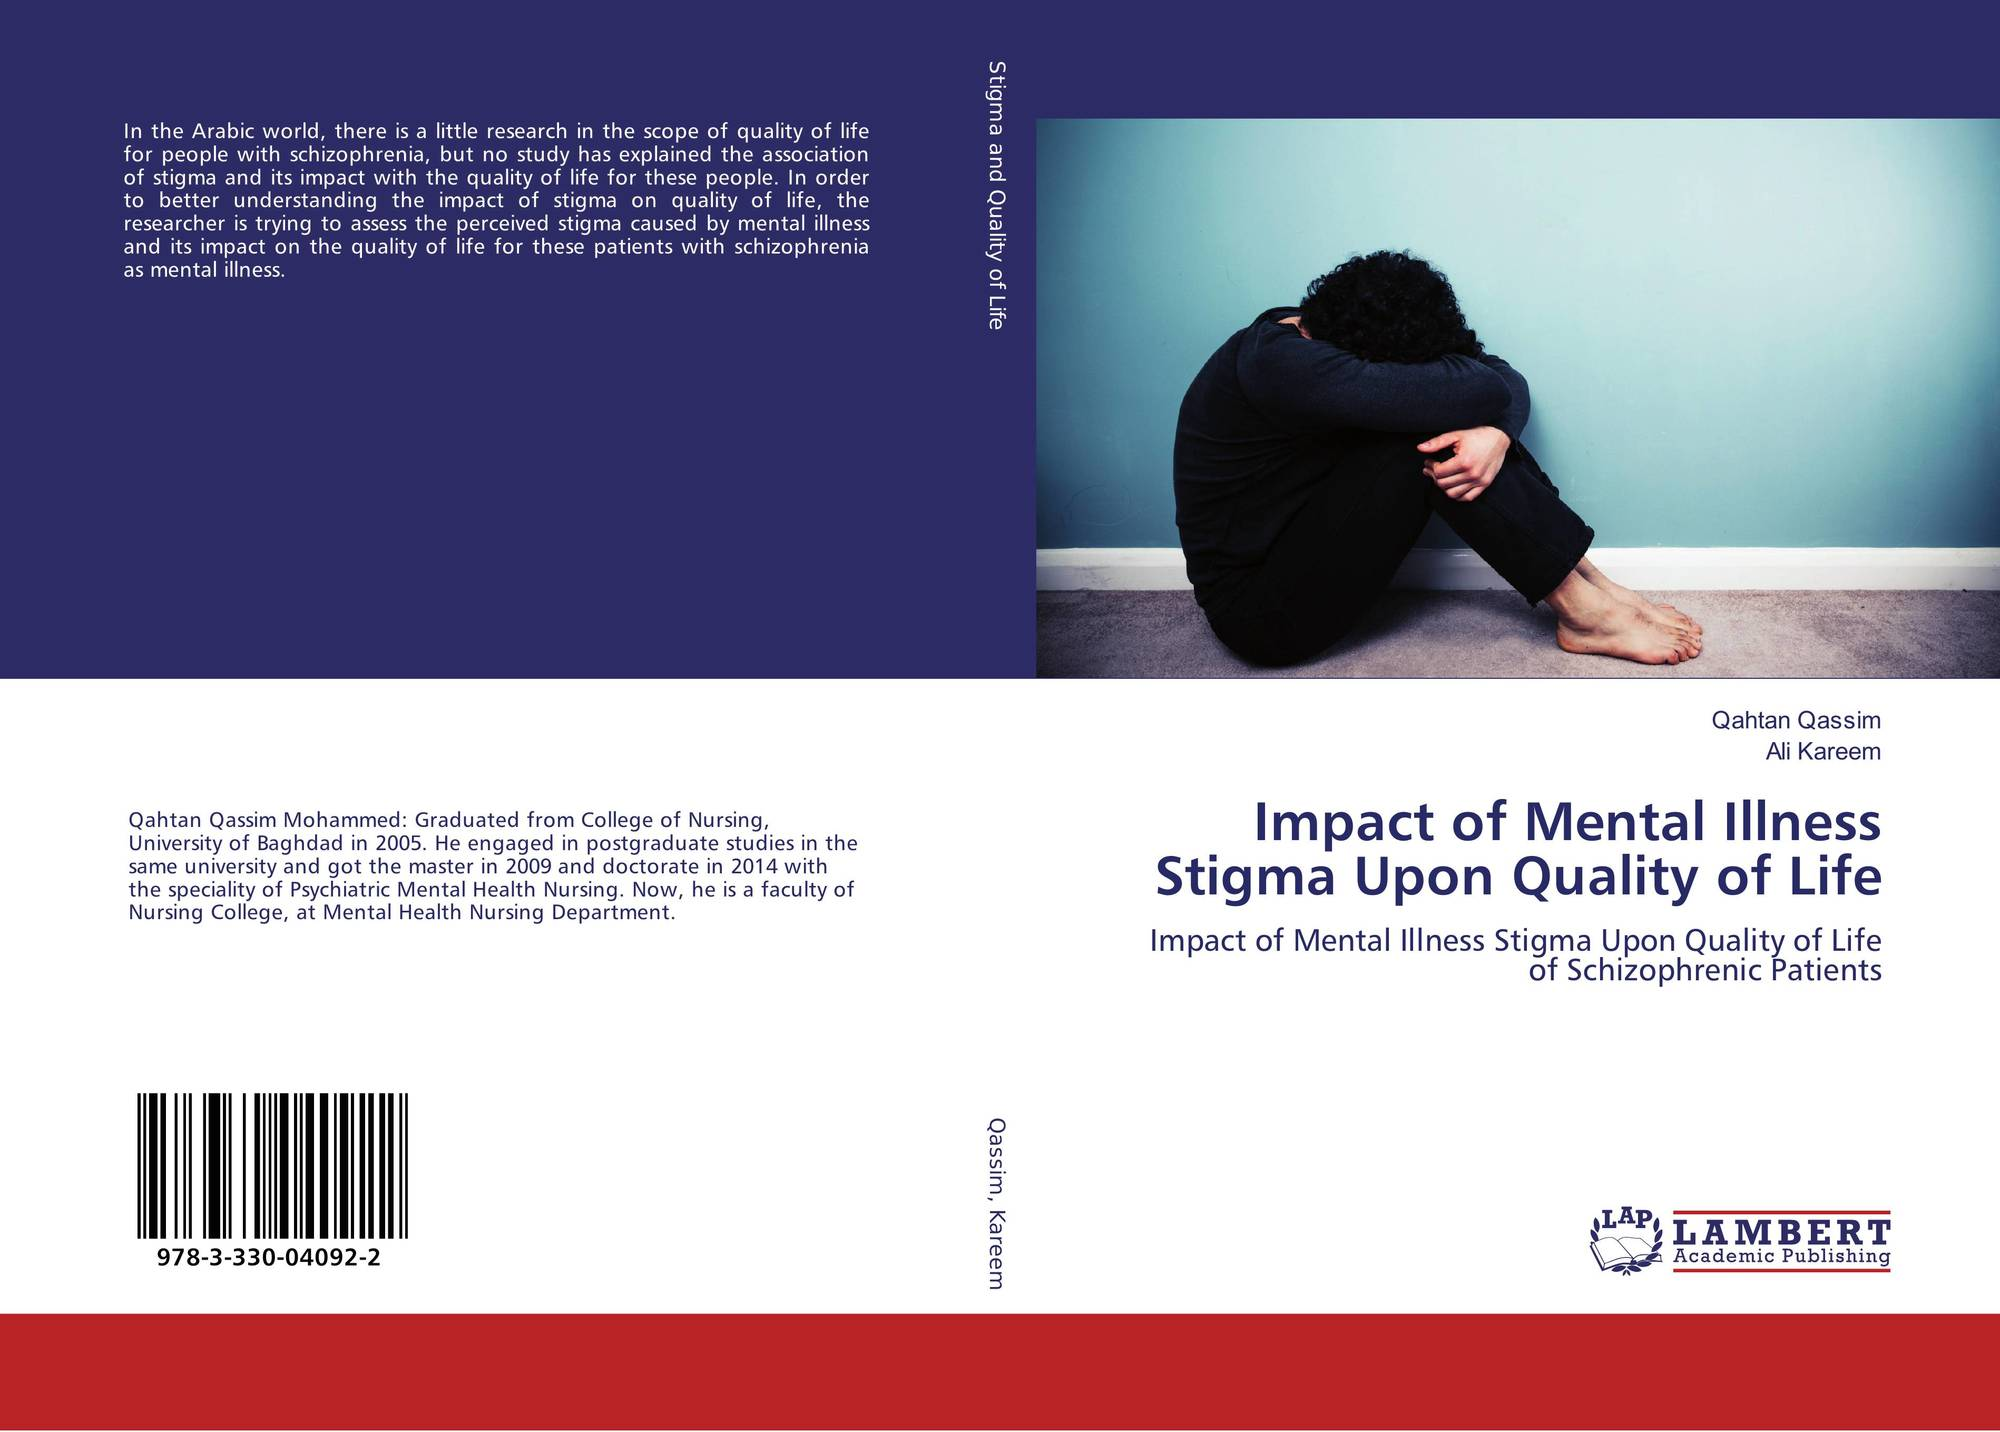 effect of stigma on mental health Military mental health providers have a duty to avoid labeling and ultimately dispel myths and stereotypes about mental health conditions and treatment, which in turn can help combat underutilization of health care services and decrease stigma.